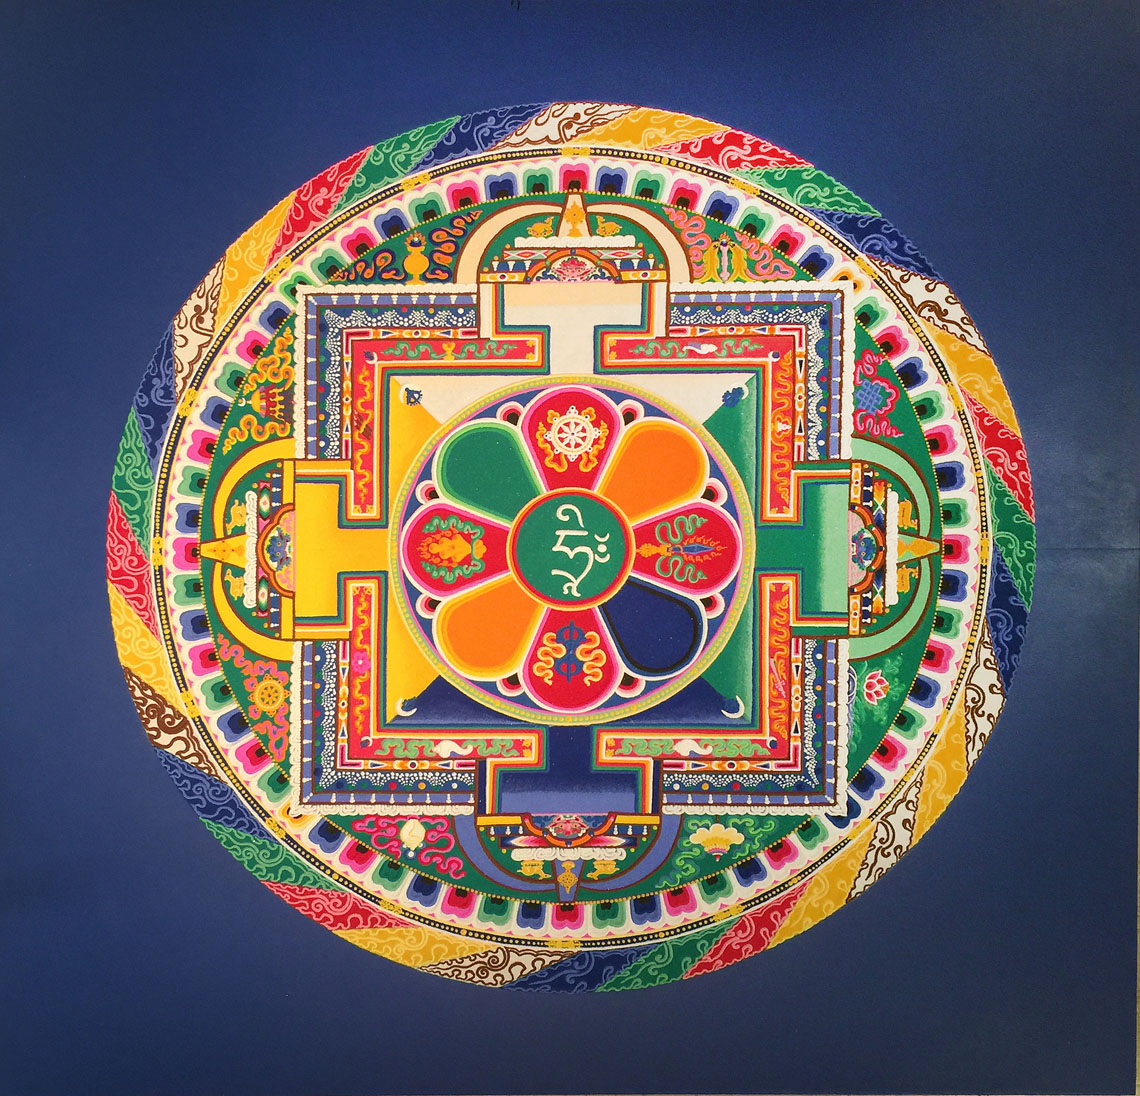 Sacred art tour of tibetan monks 2017 for Arts and crafts shows in florida